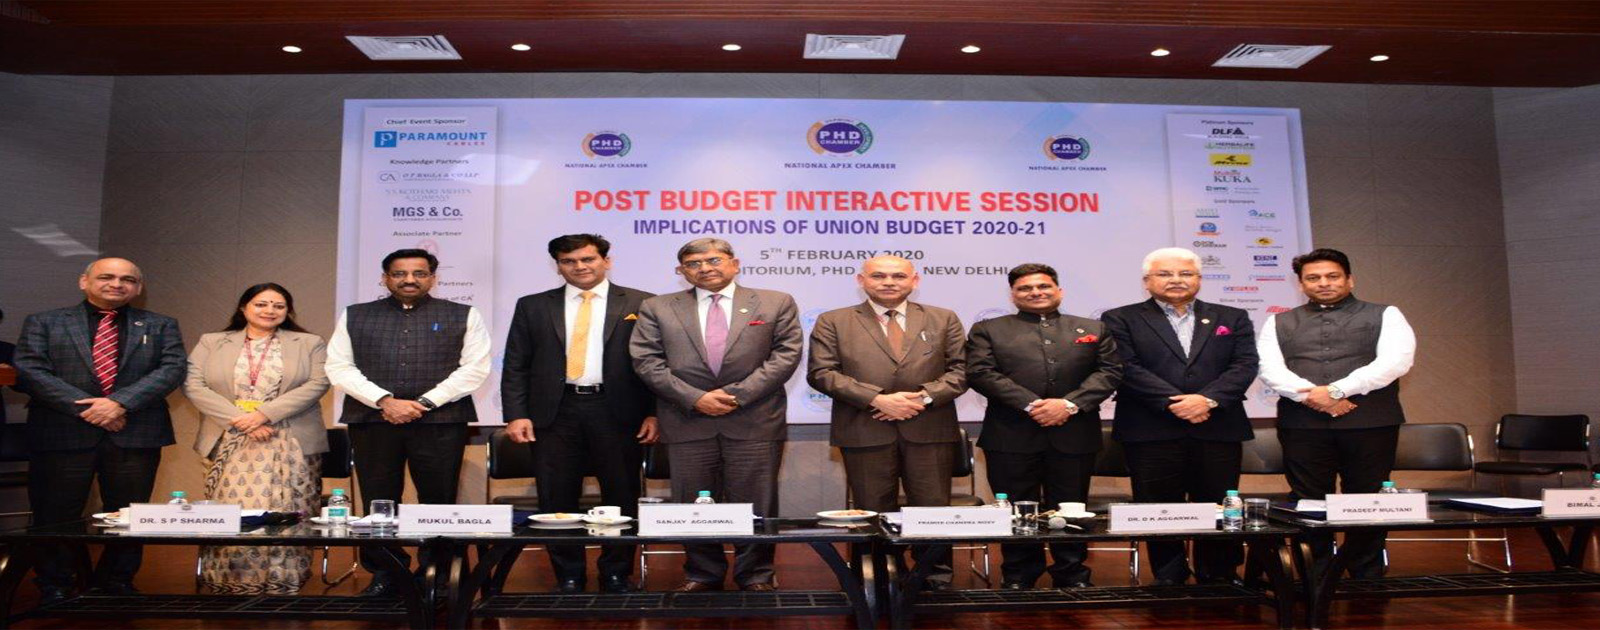 Post Budget Interactive Session – Implications of Union Budget 2020-21